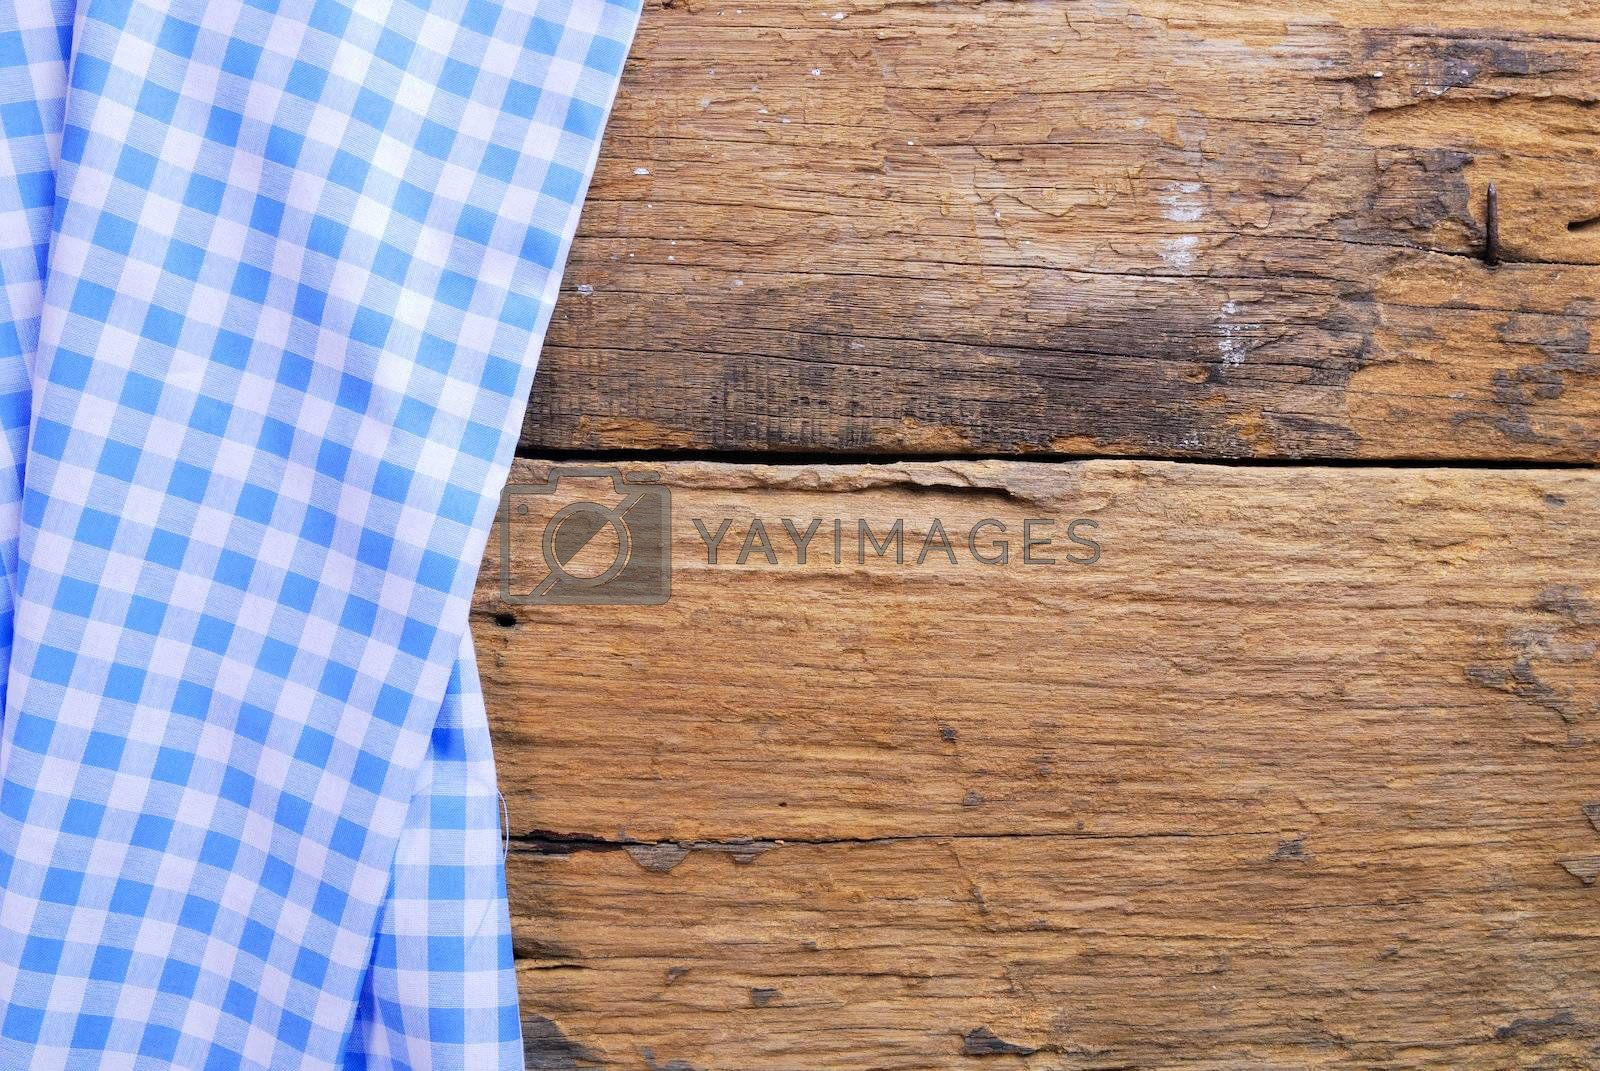 Royalty free image of the background made from checkered napkin on old wooden table by teen00000